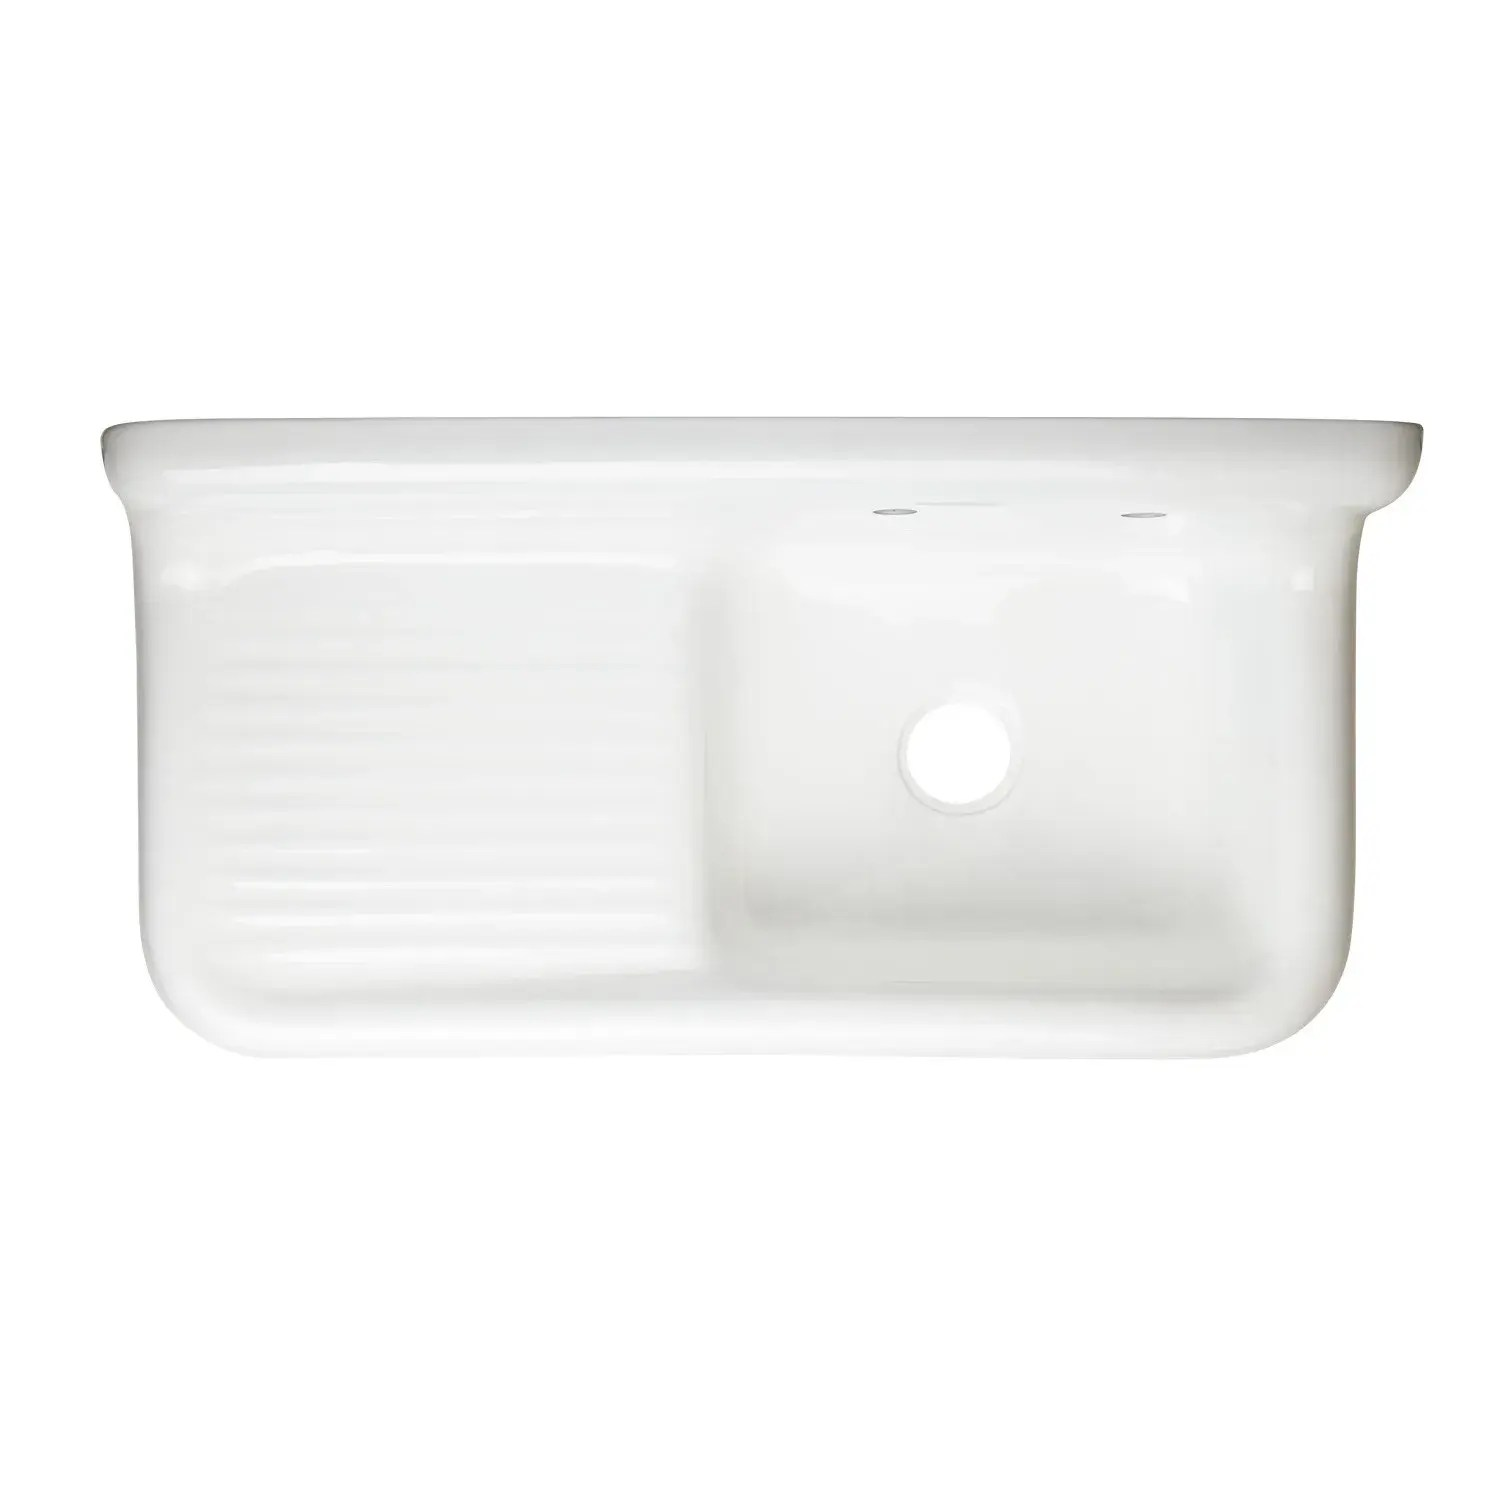 42 cast iron wall mount kitchen sink with drainboard